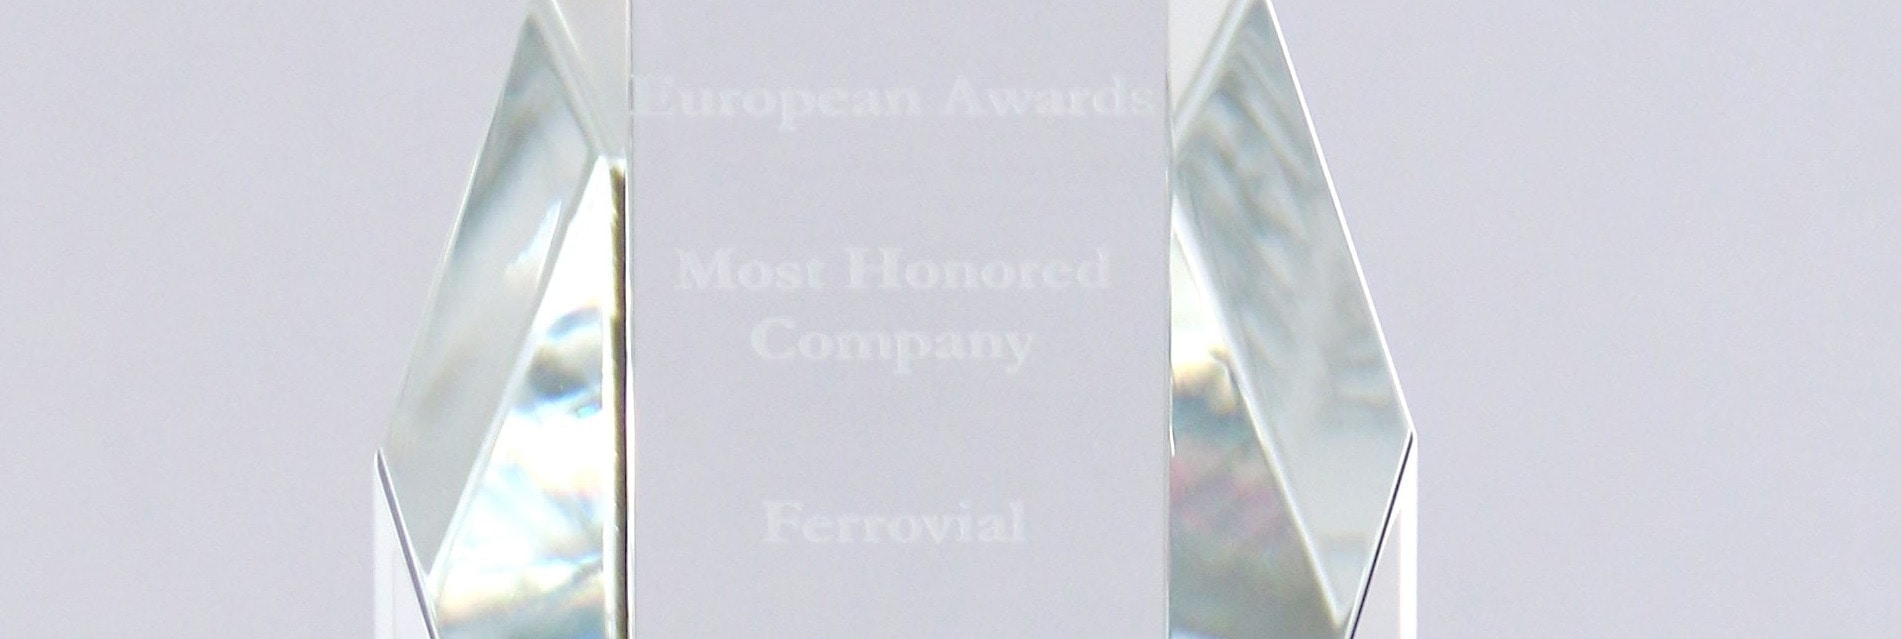 Institutional Investor awards ferrovial